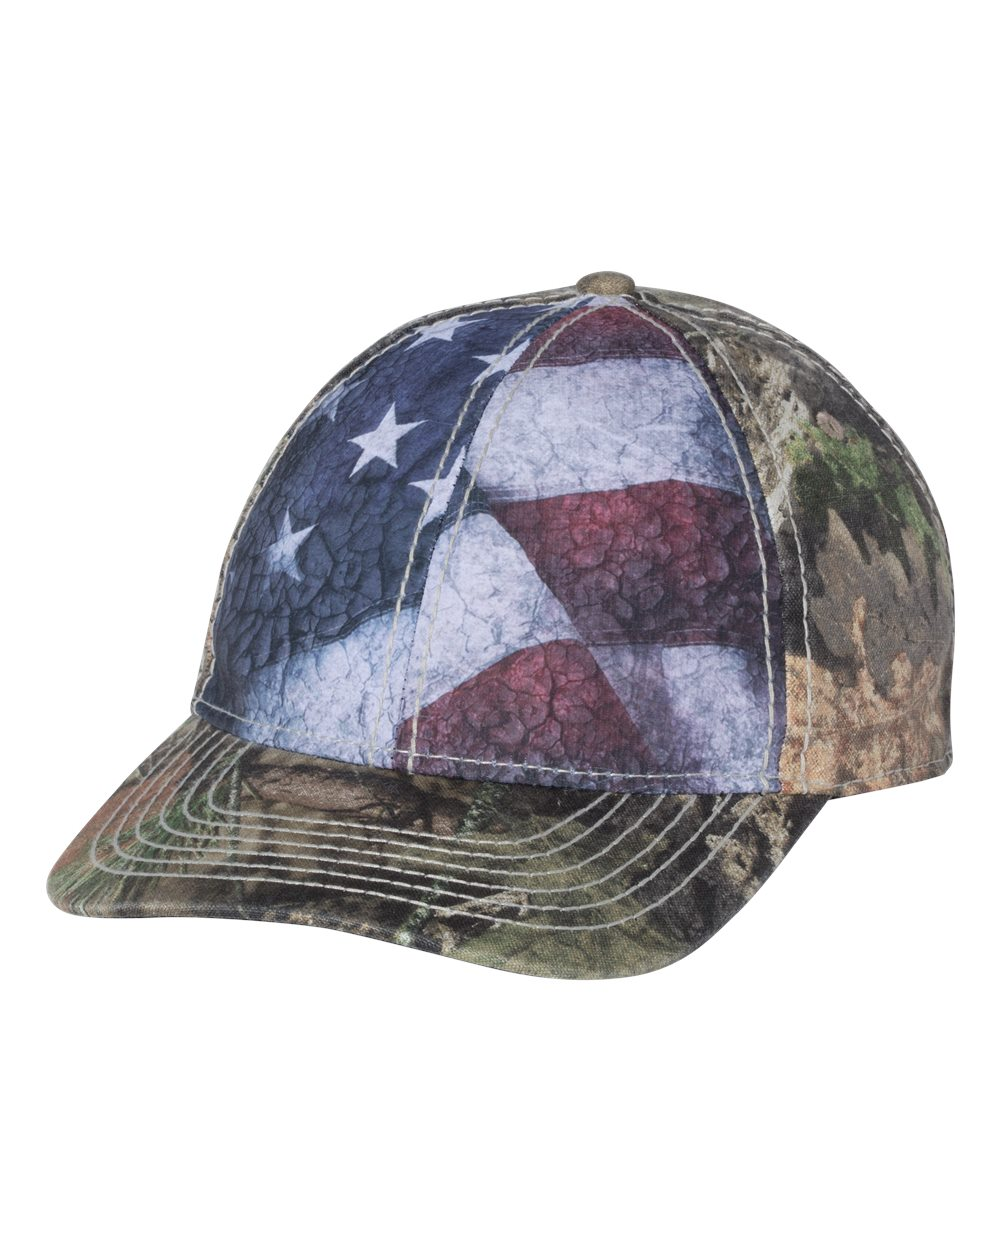 Outdoor Cap SUS100 - Camo Cap with Flag Sublimated Front Panels